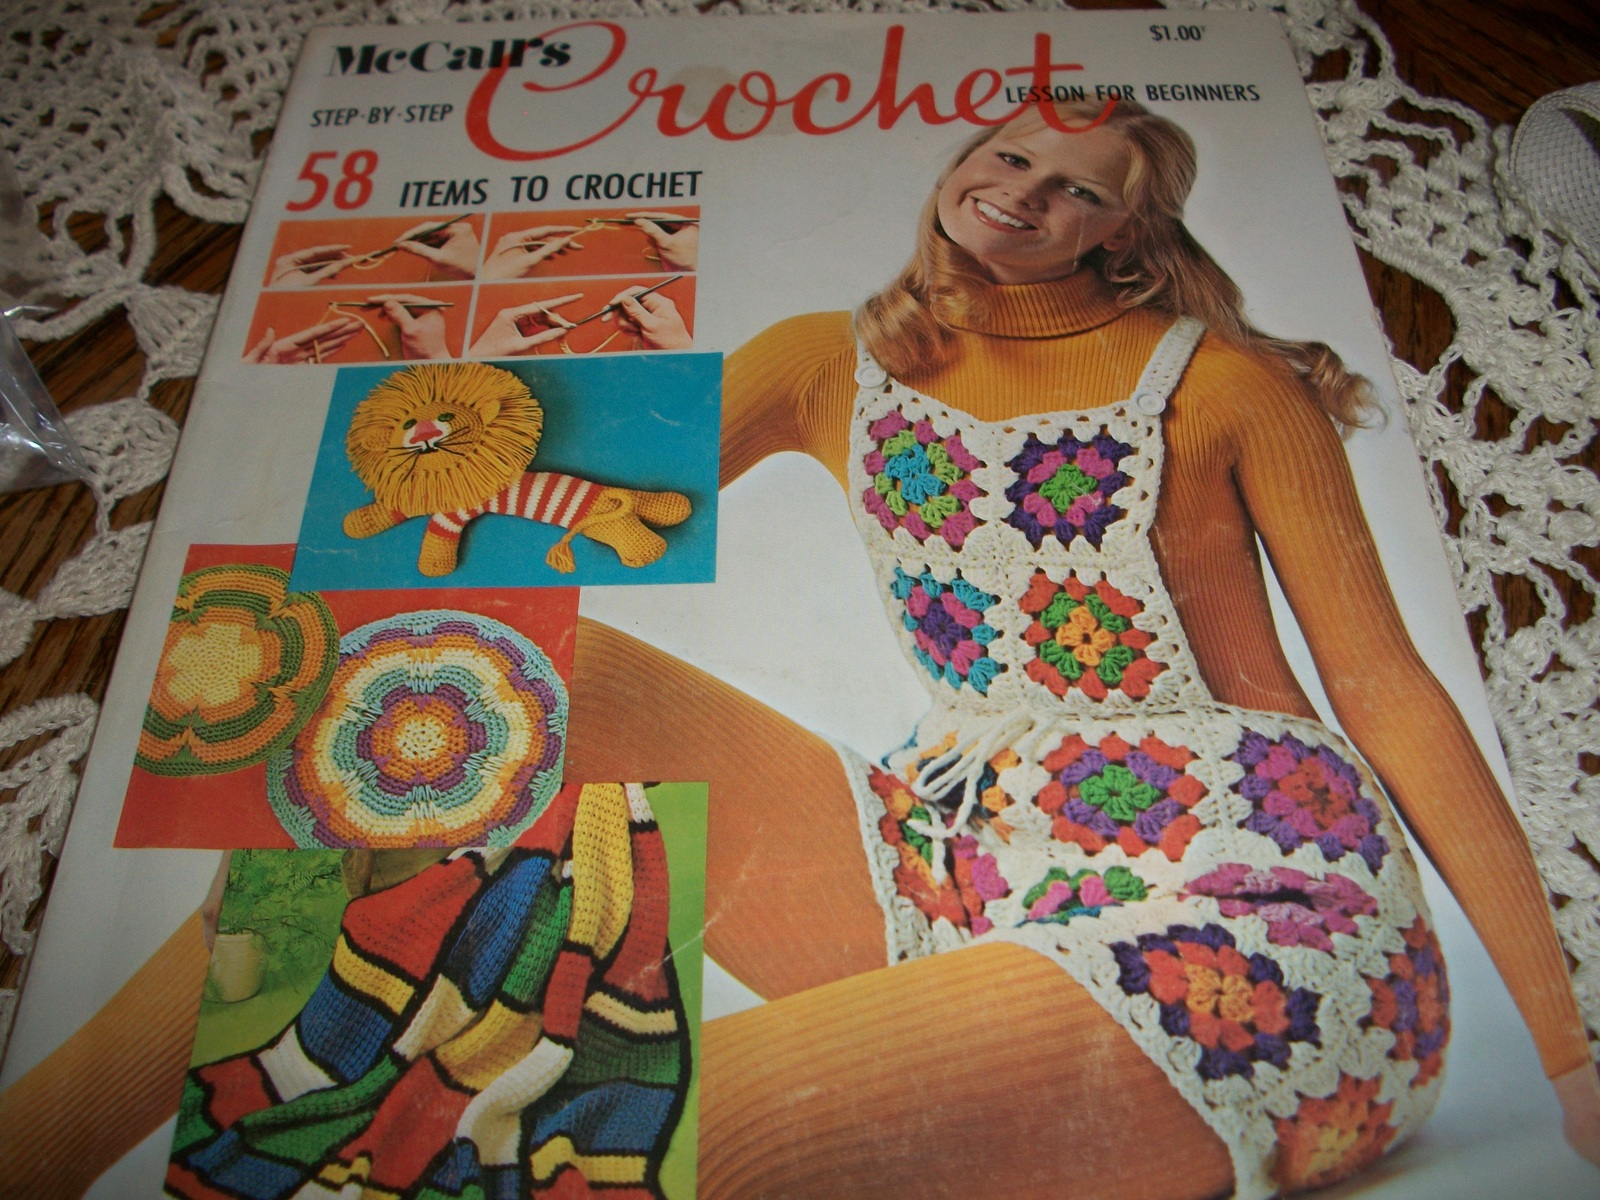 Primary image for McCall's Step-By-Step Crochet Lesson For Beginners: 58 Items To Crochet